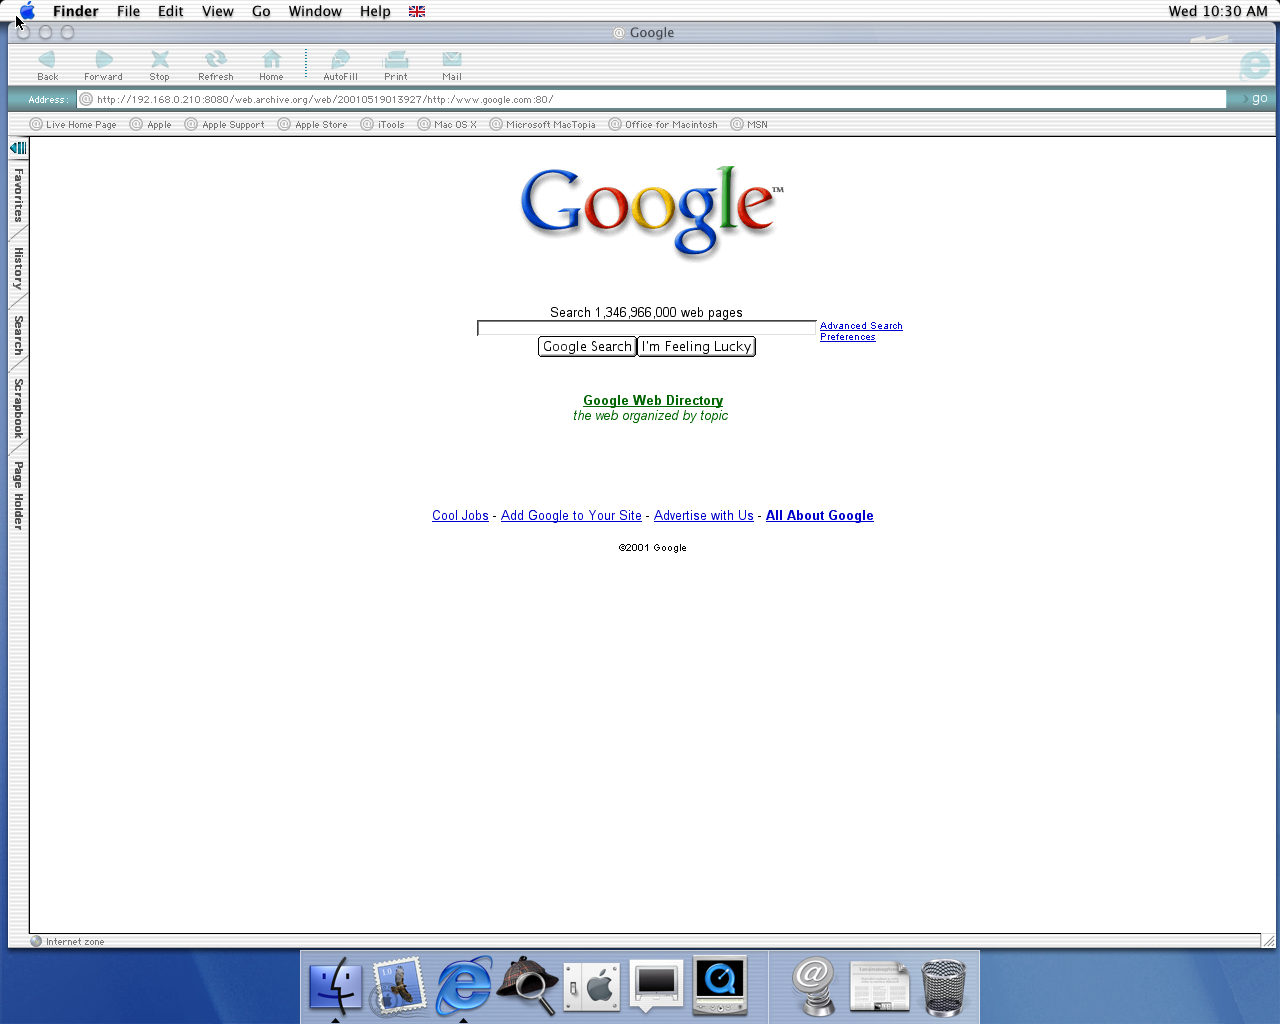 OS X 10.0 PPC with Microsoft Internet Explorer 5.1 for Mac Preview displaying a page from Google.com archived at May 19, 2001 at 01:39:27